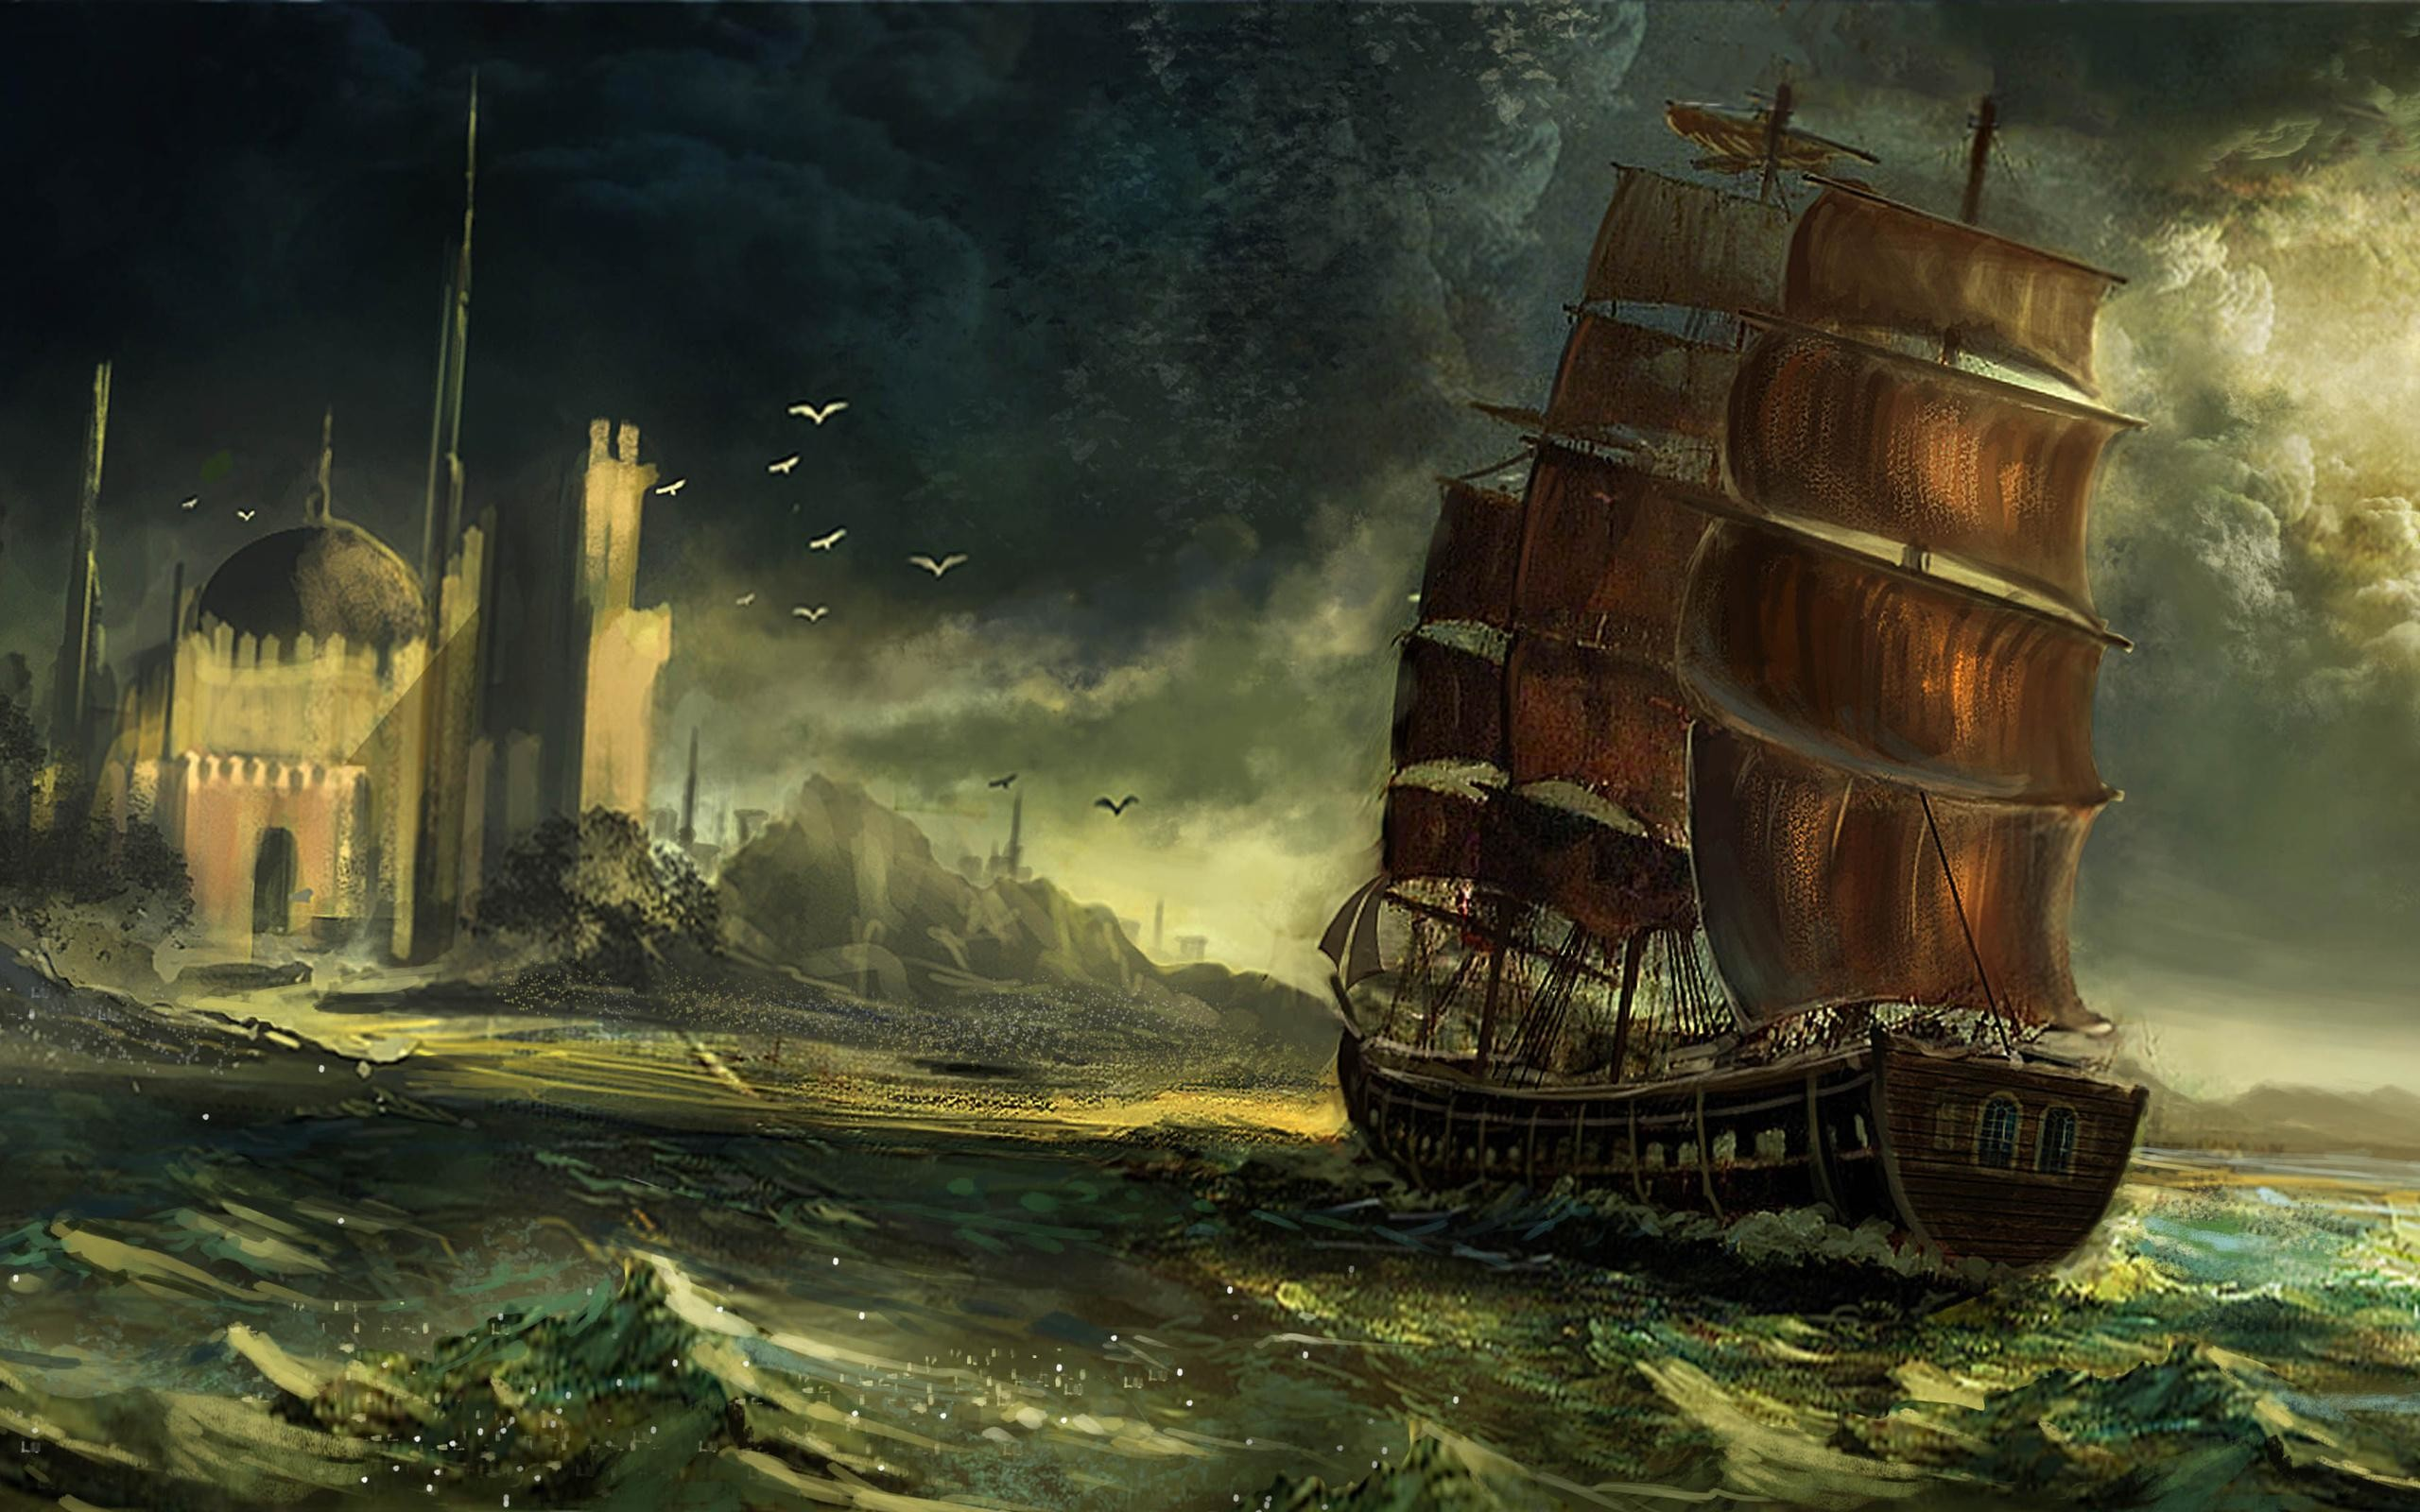 Pirate ship wallpaper 82 images - Pirates hd images ...